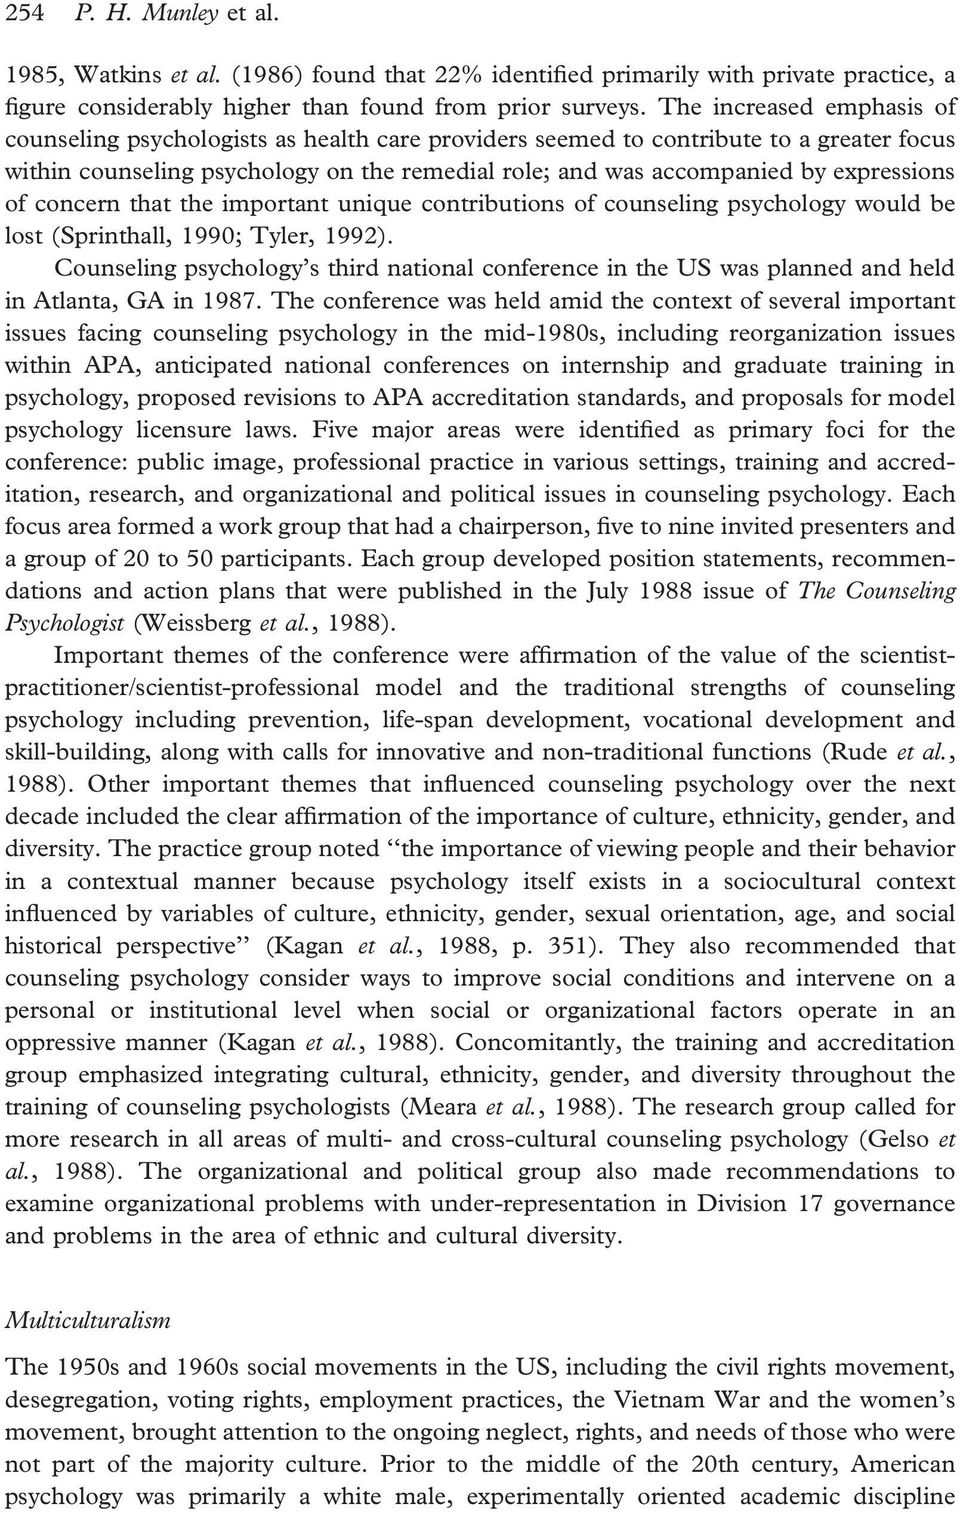 expressions of concern that the important unique contributions of counseling psychology would be lost (Sprinthall, 1990; Tyler, 1992).